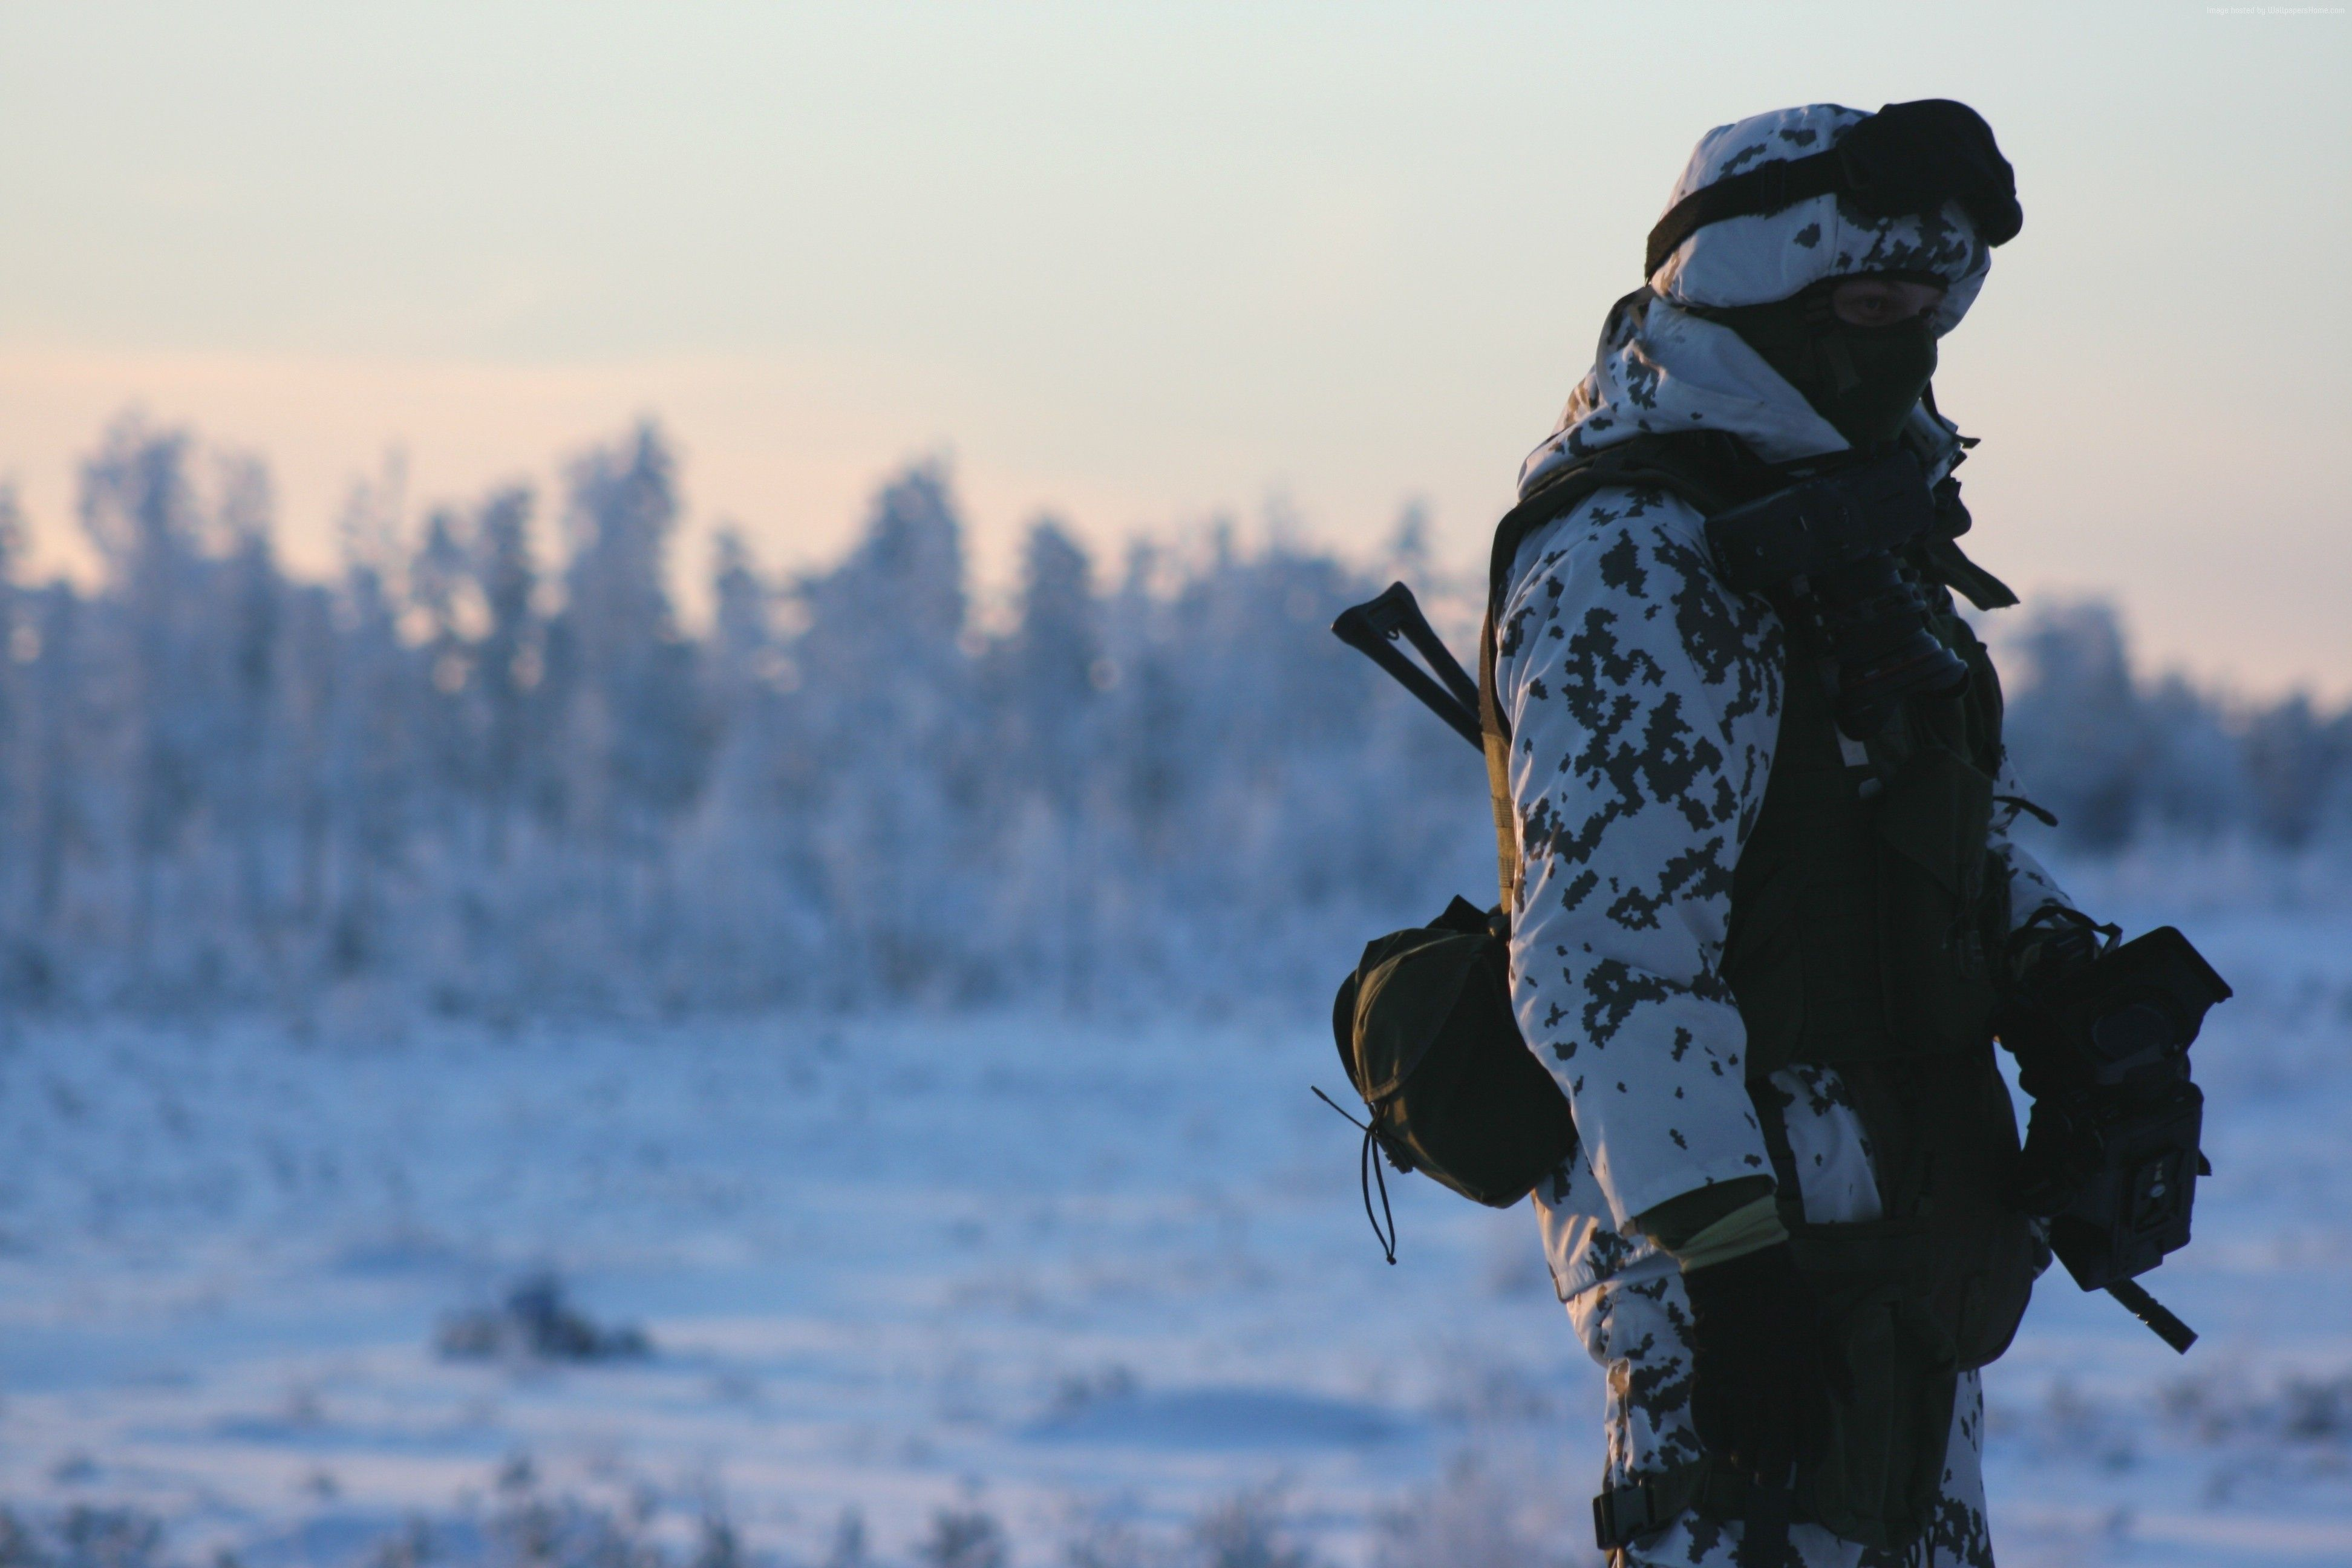 3888x2592 Wallpaper Russian Armed Forces, soldier, Russia, camo, winter, snow ...